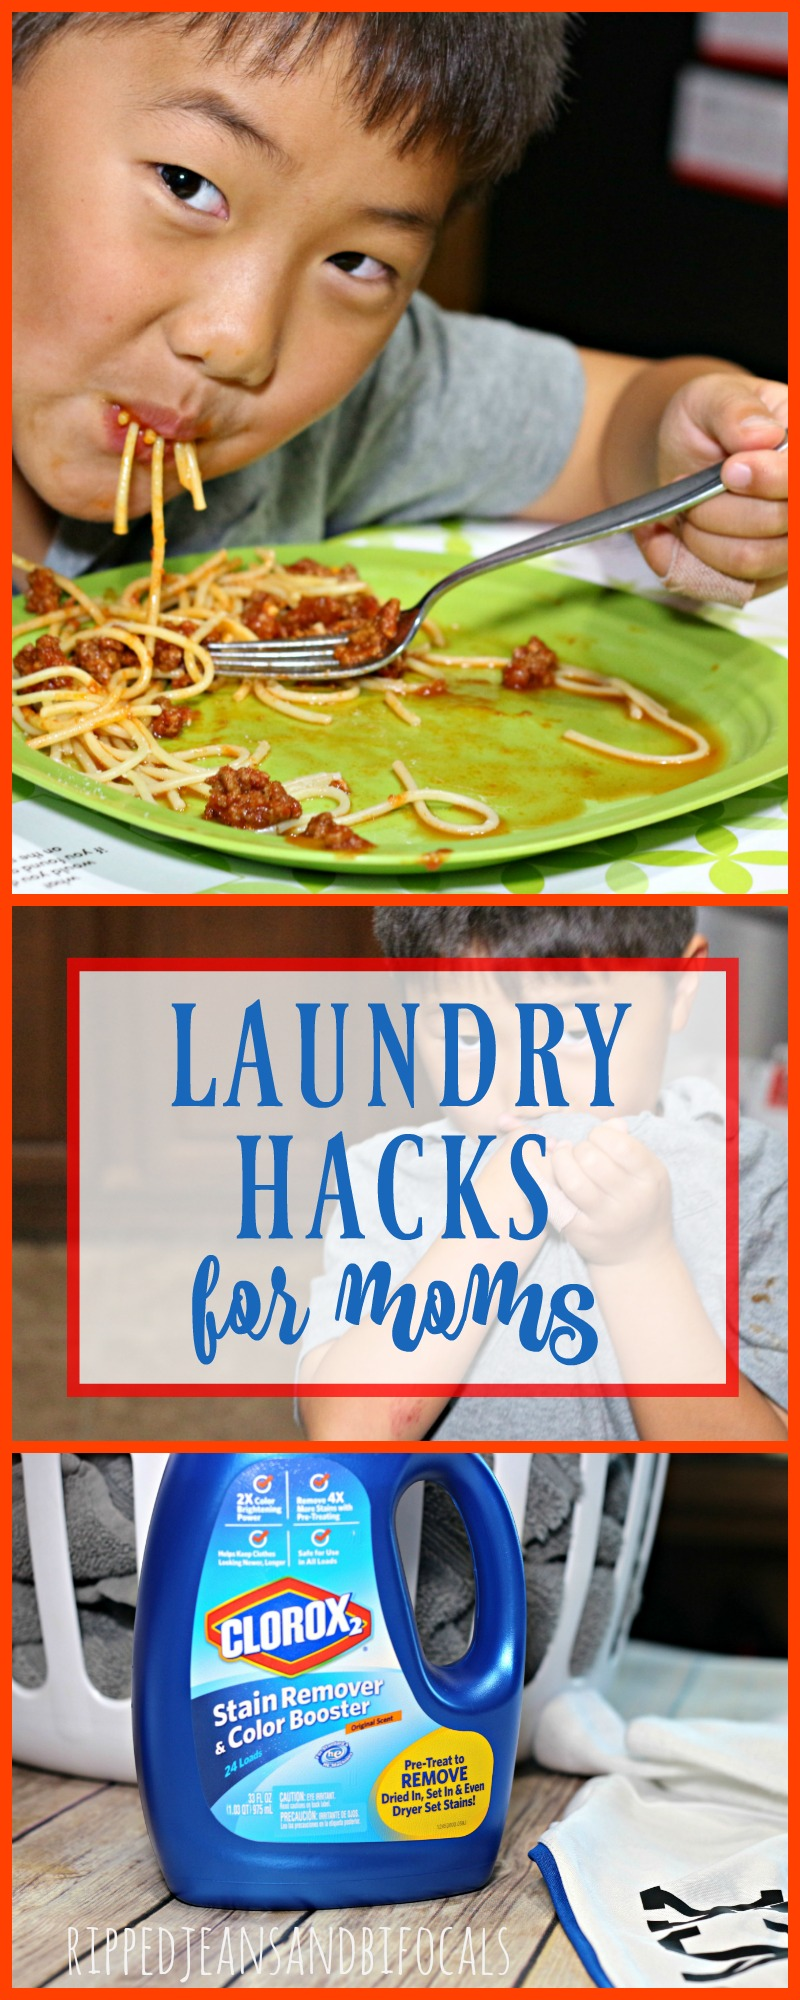 Laundry Hacks for Moms|Ripped Jeans and BIfocals